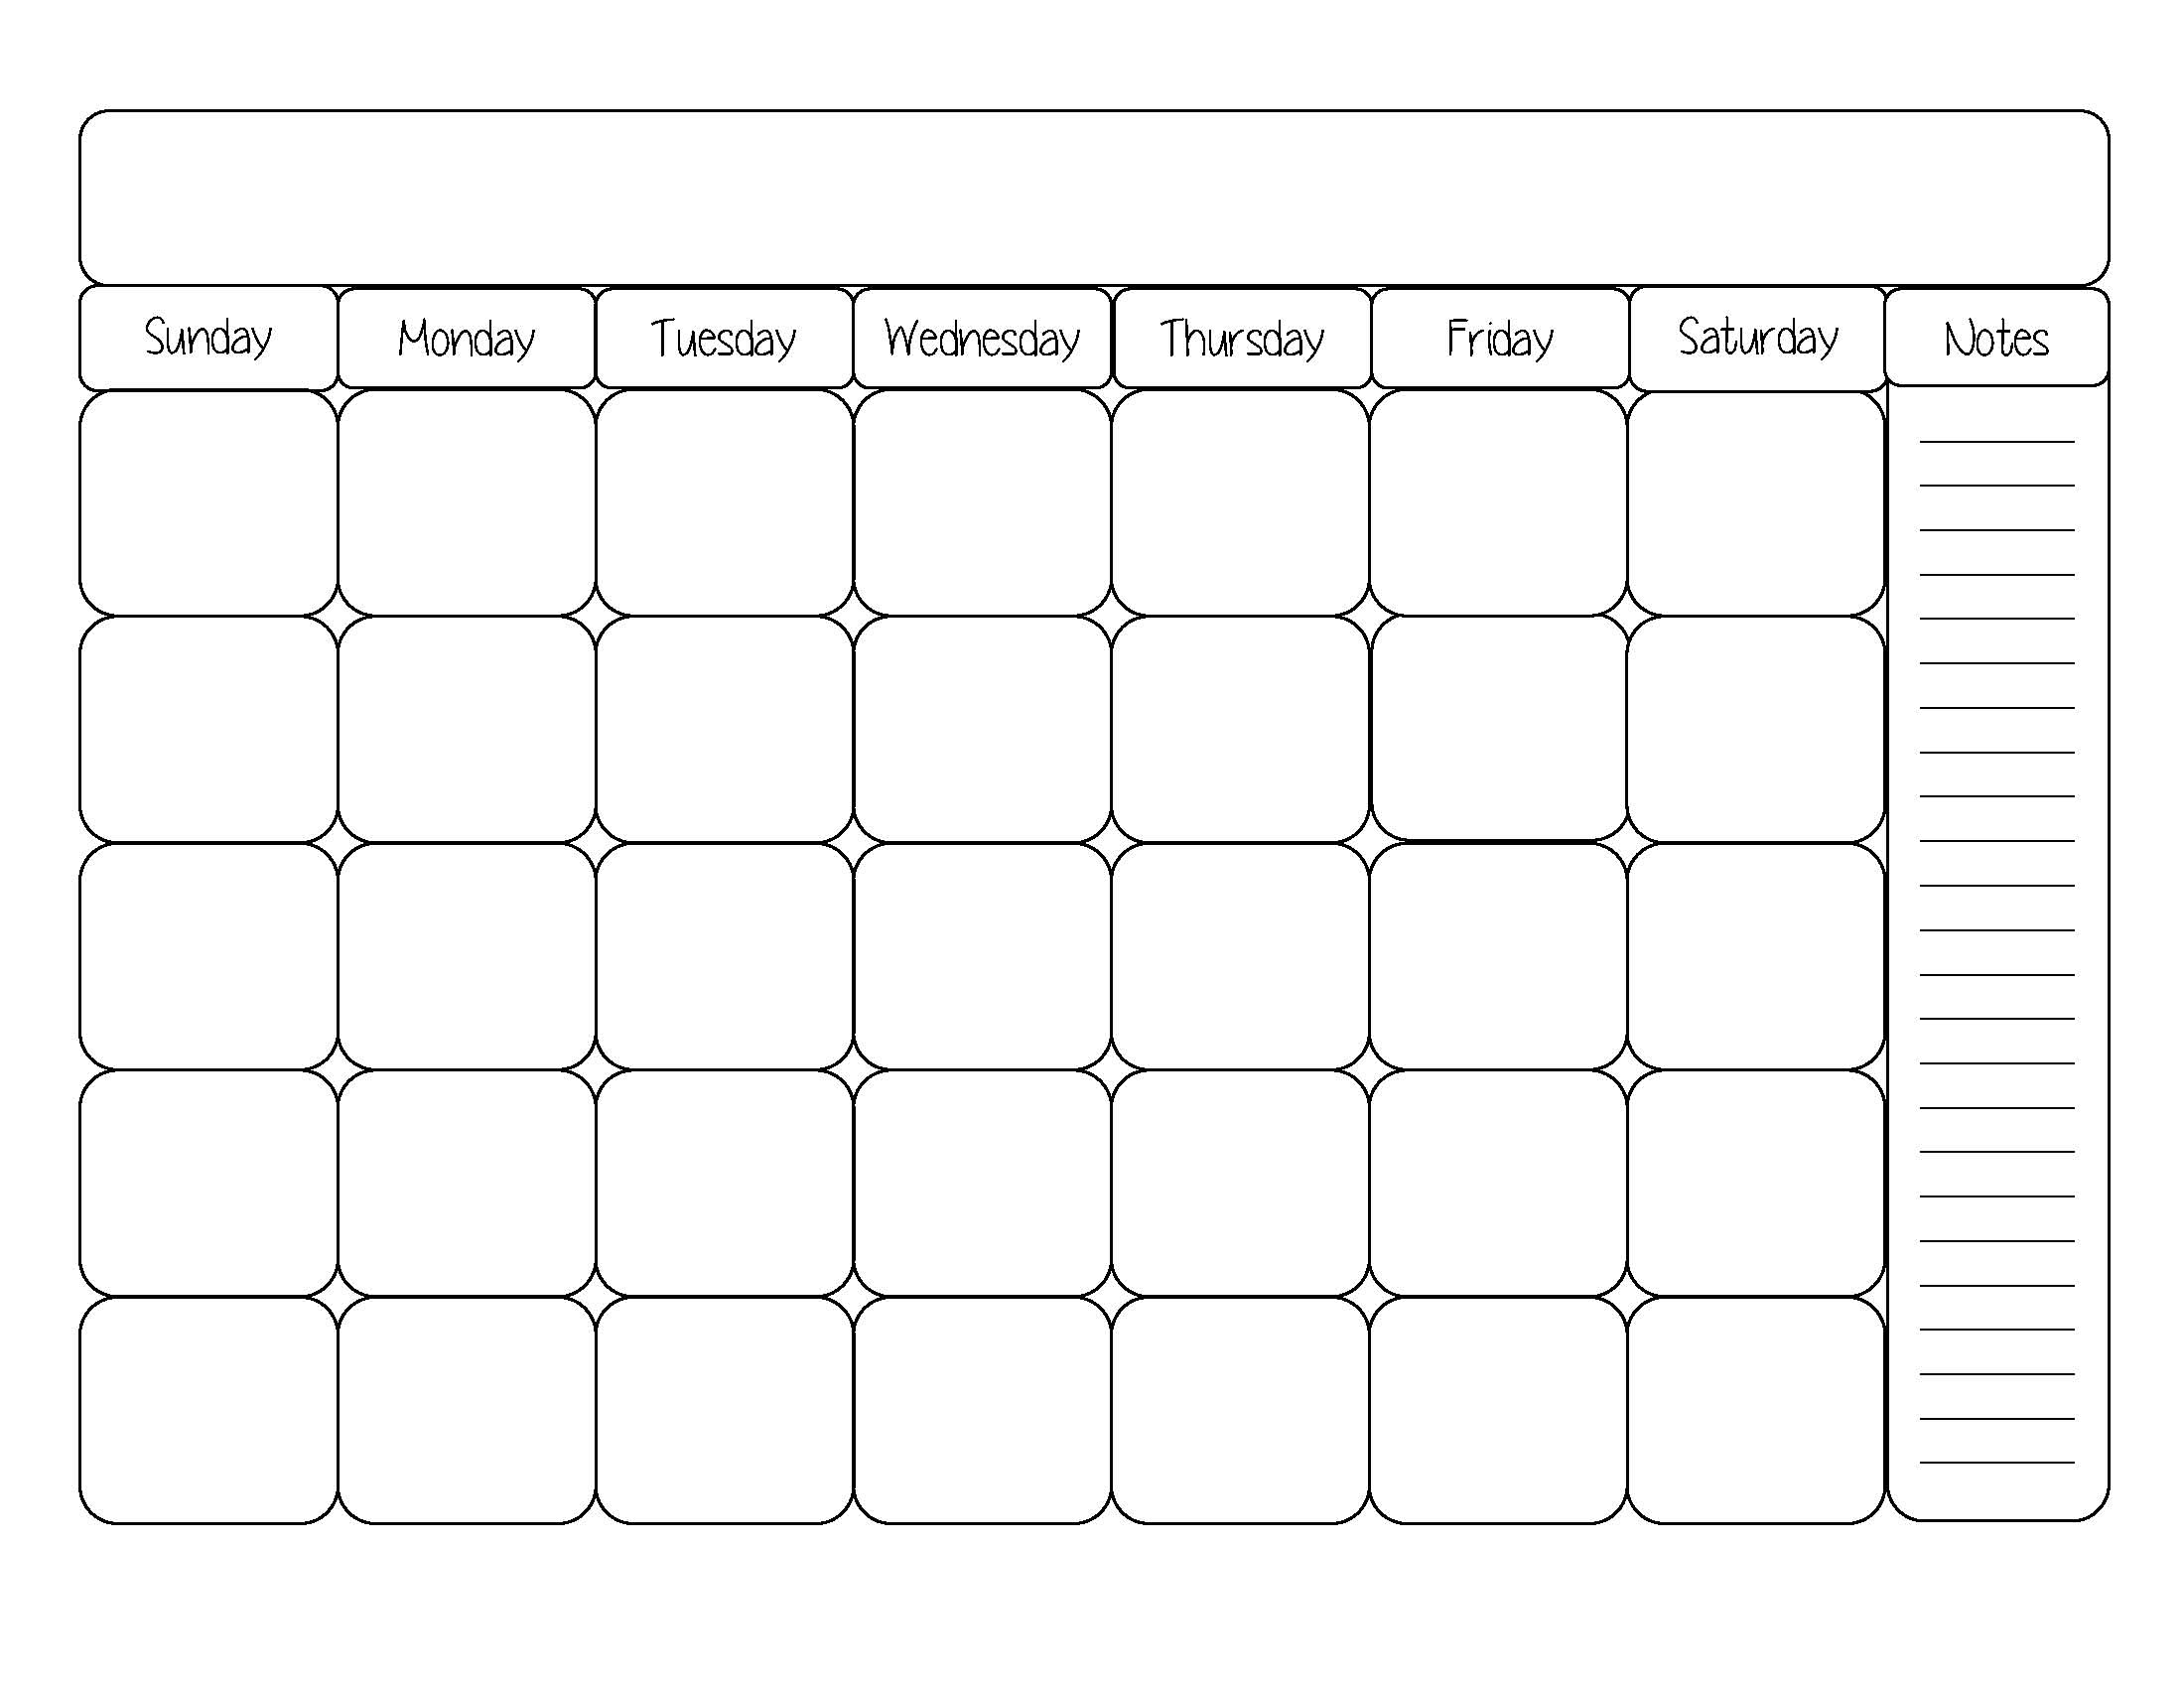 7 Best Images of Printable Blank Day Calendar Template ...